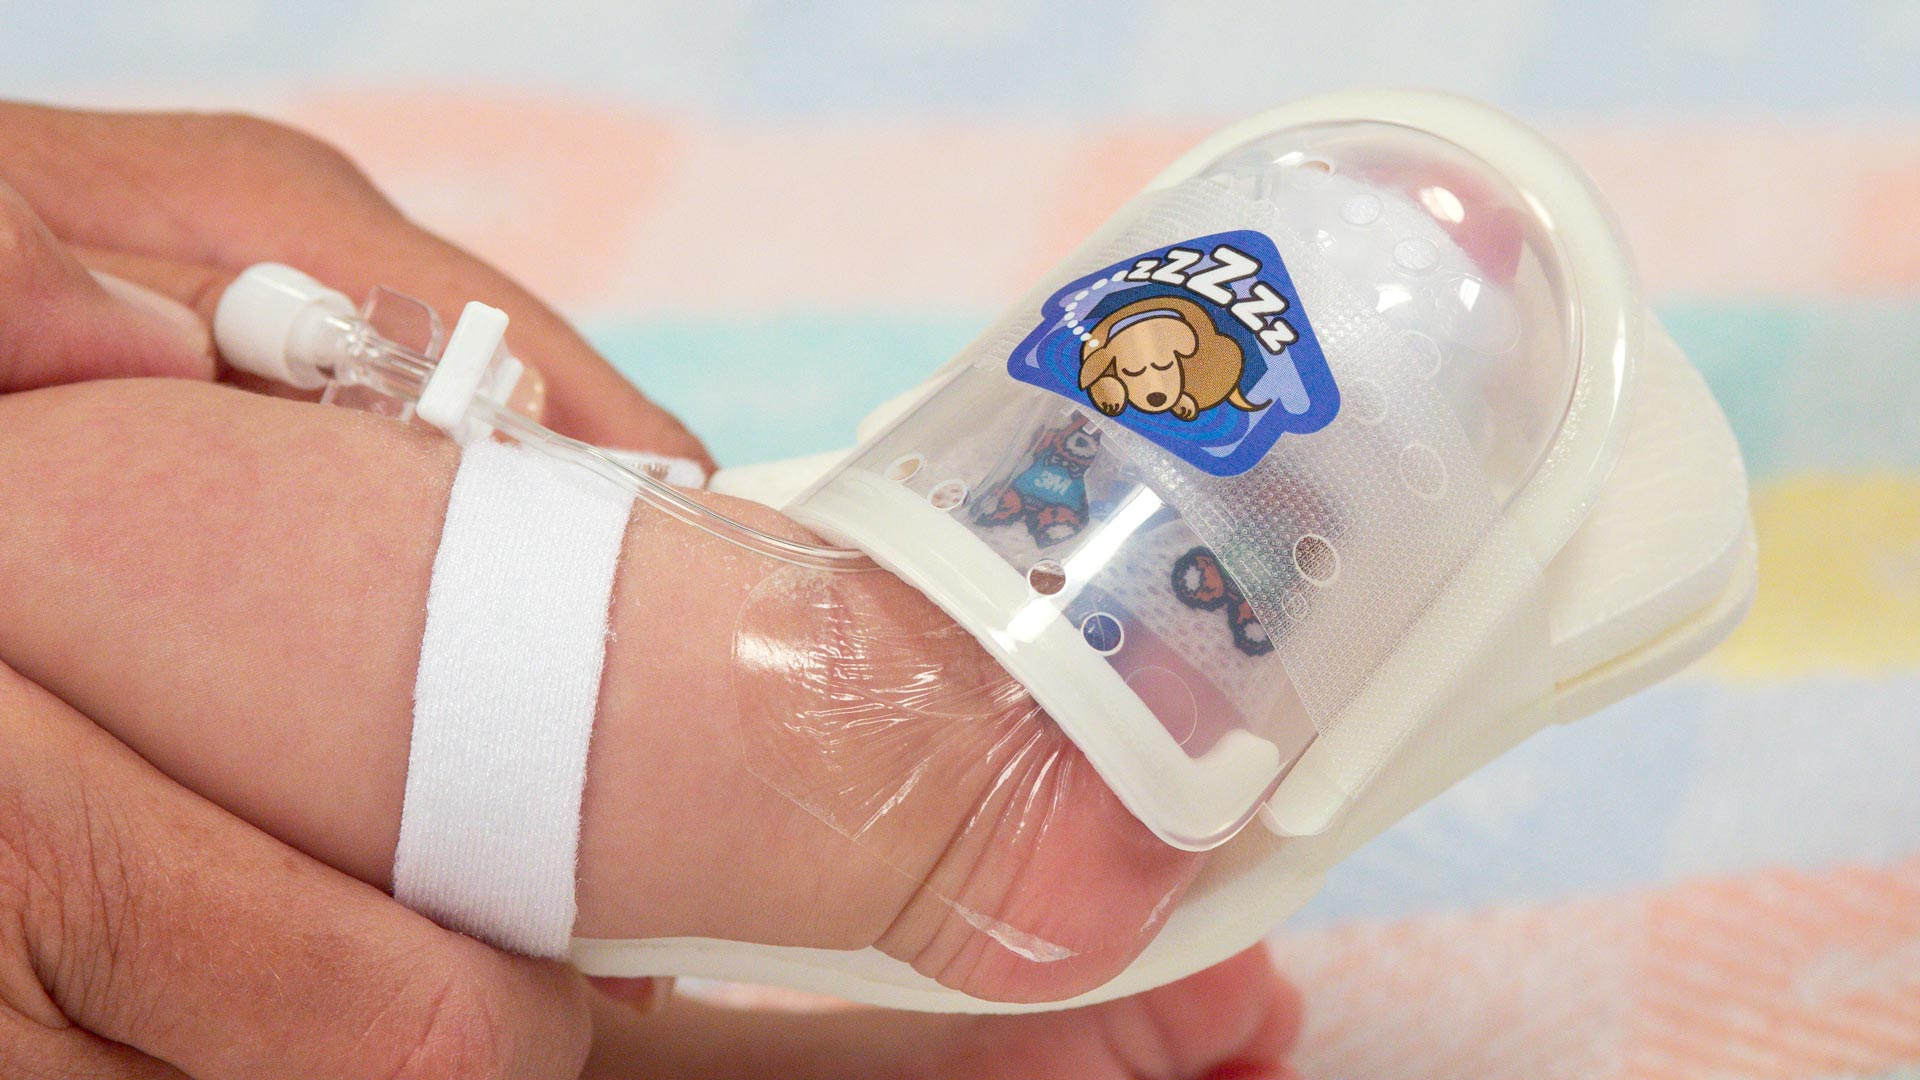 Ivy Puppy Sticker on 750LFP UltraDome reminds the child to leave the IV insertion site alone